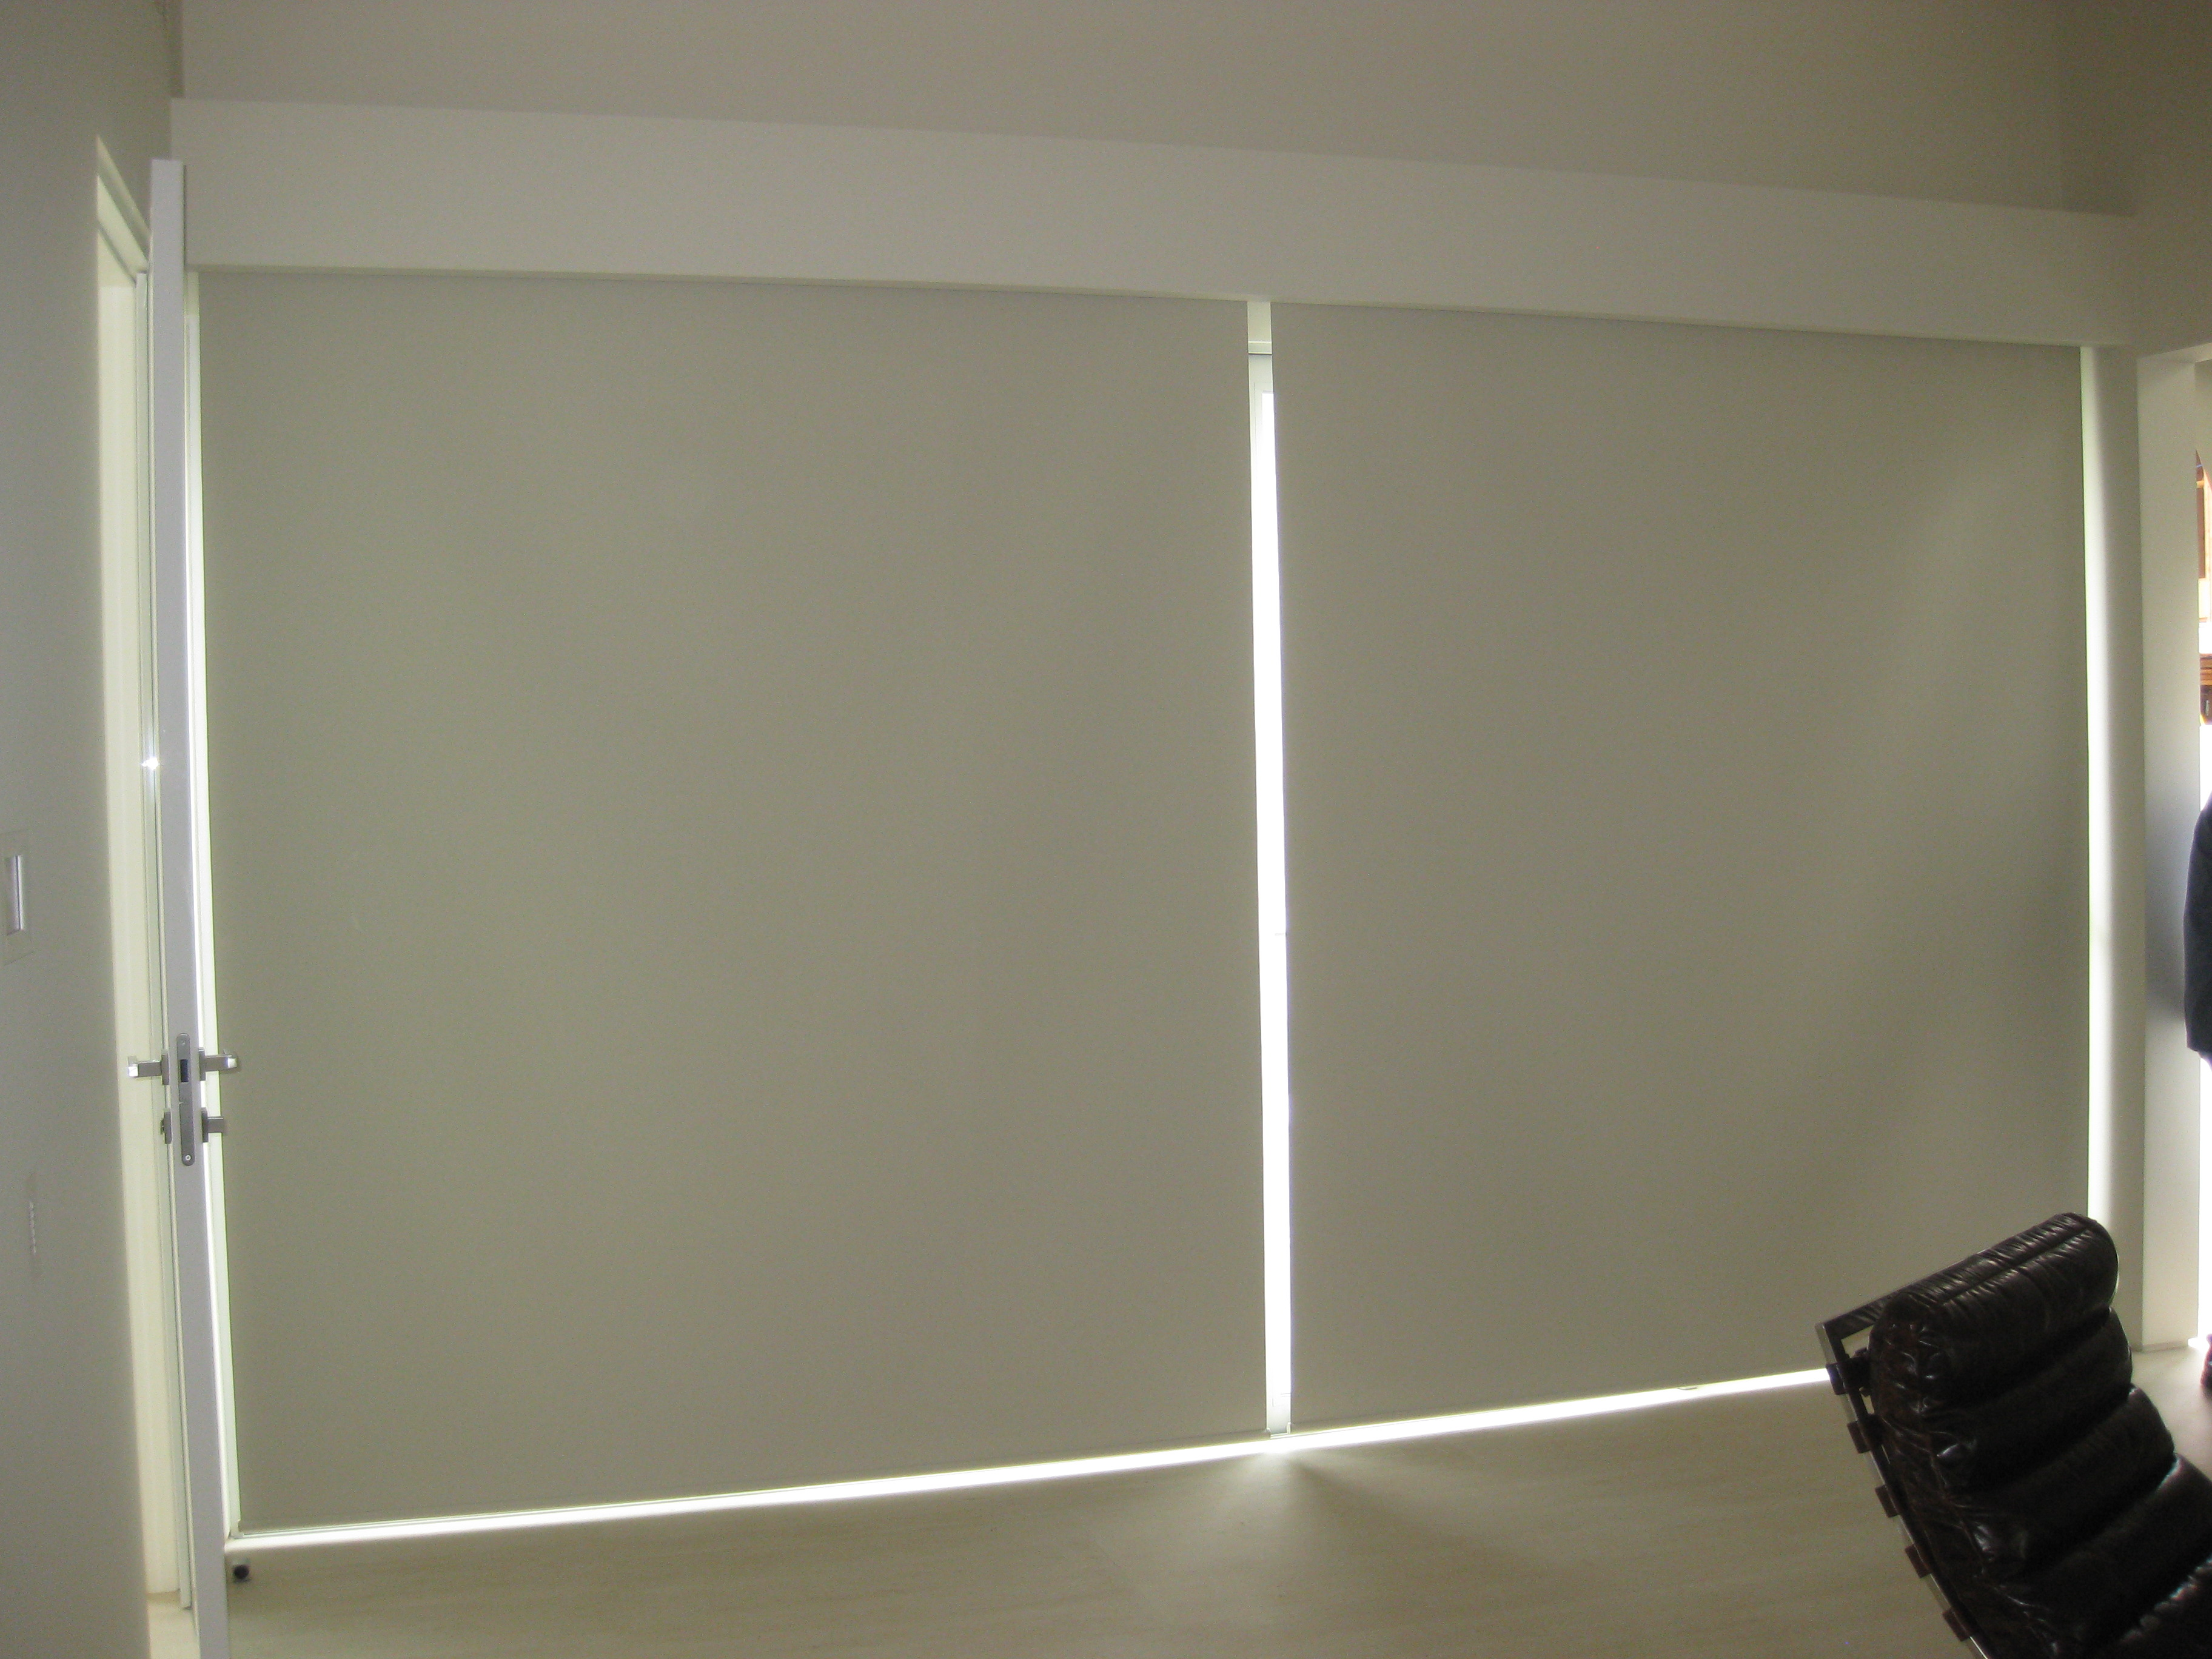 colorado of springs with and budget back wa sw latest blinds vancouver